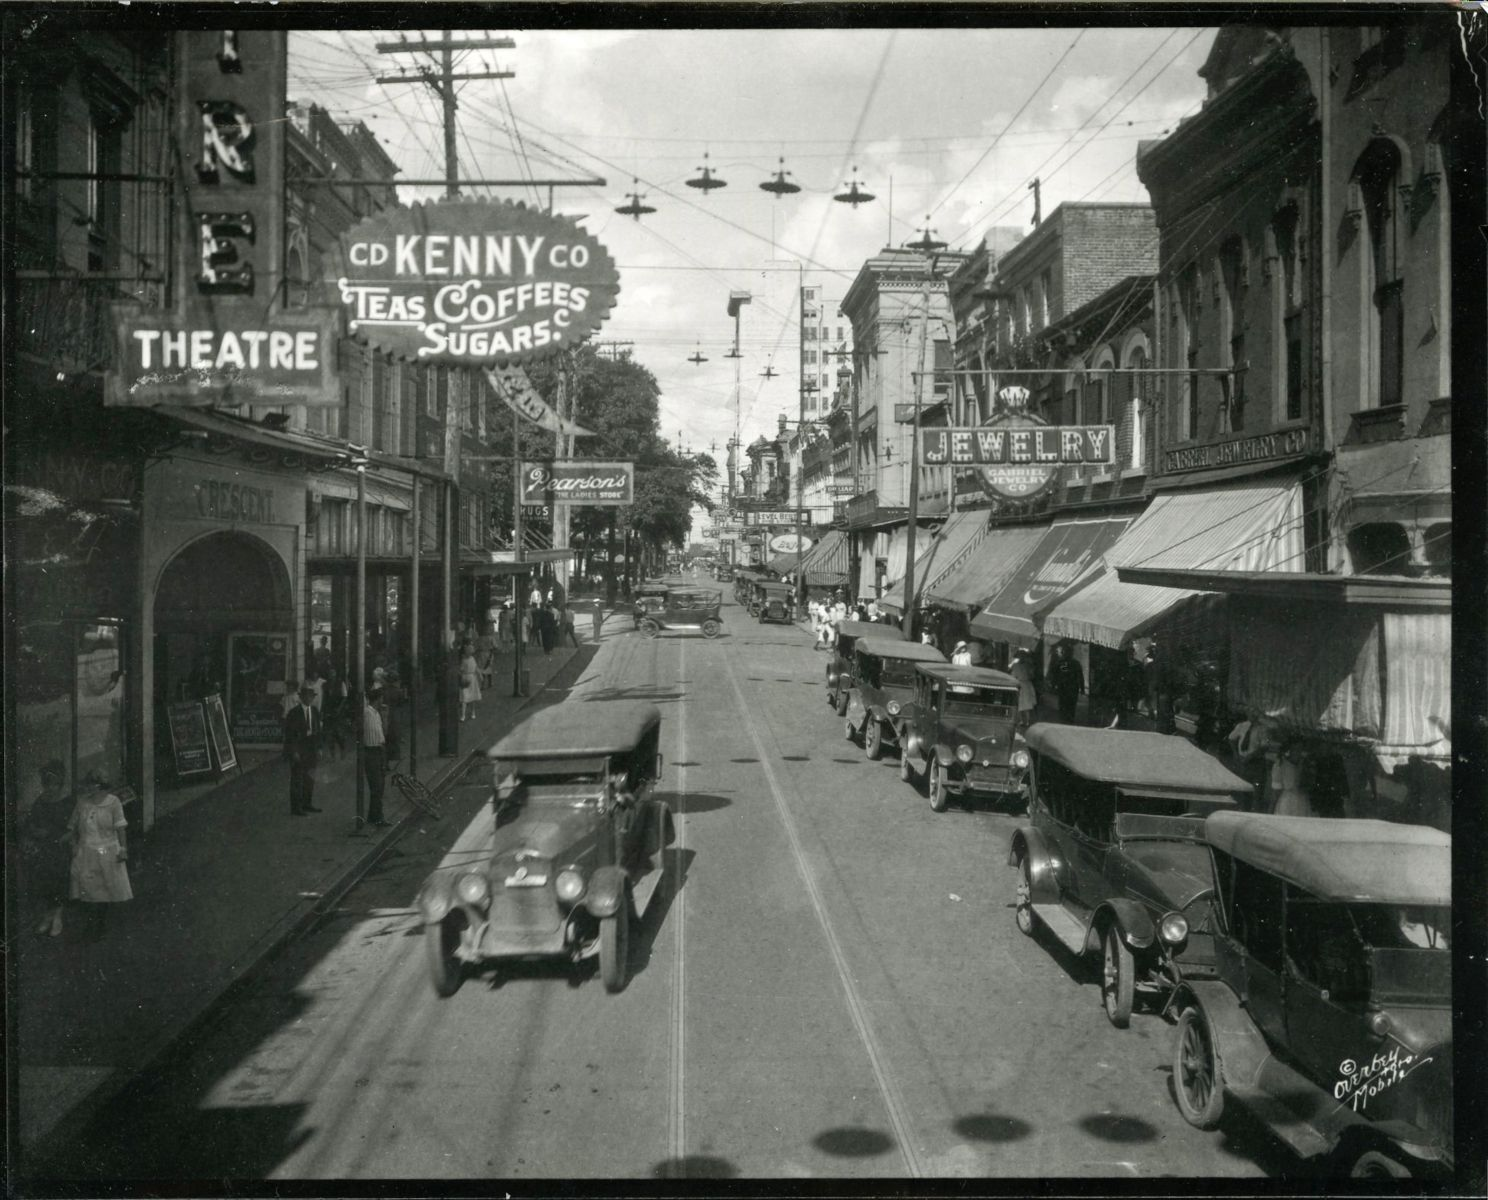 old street scene with early automobiles